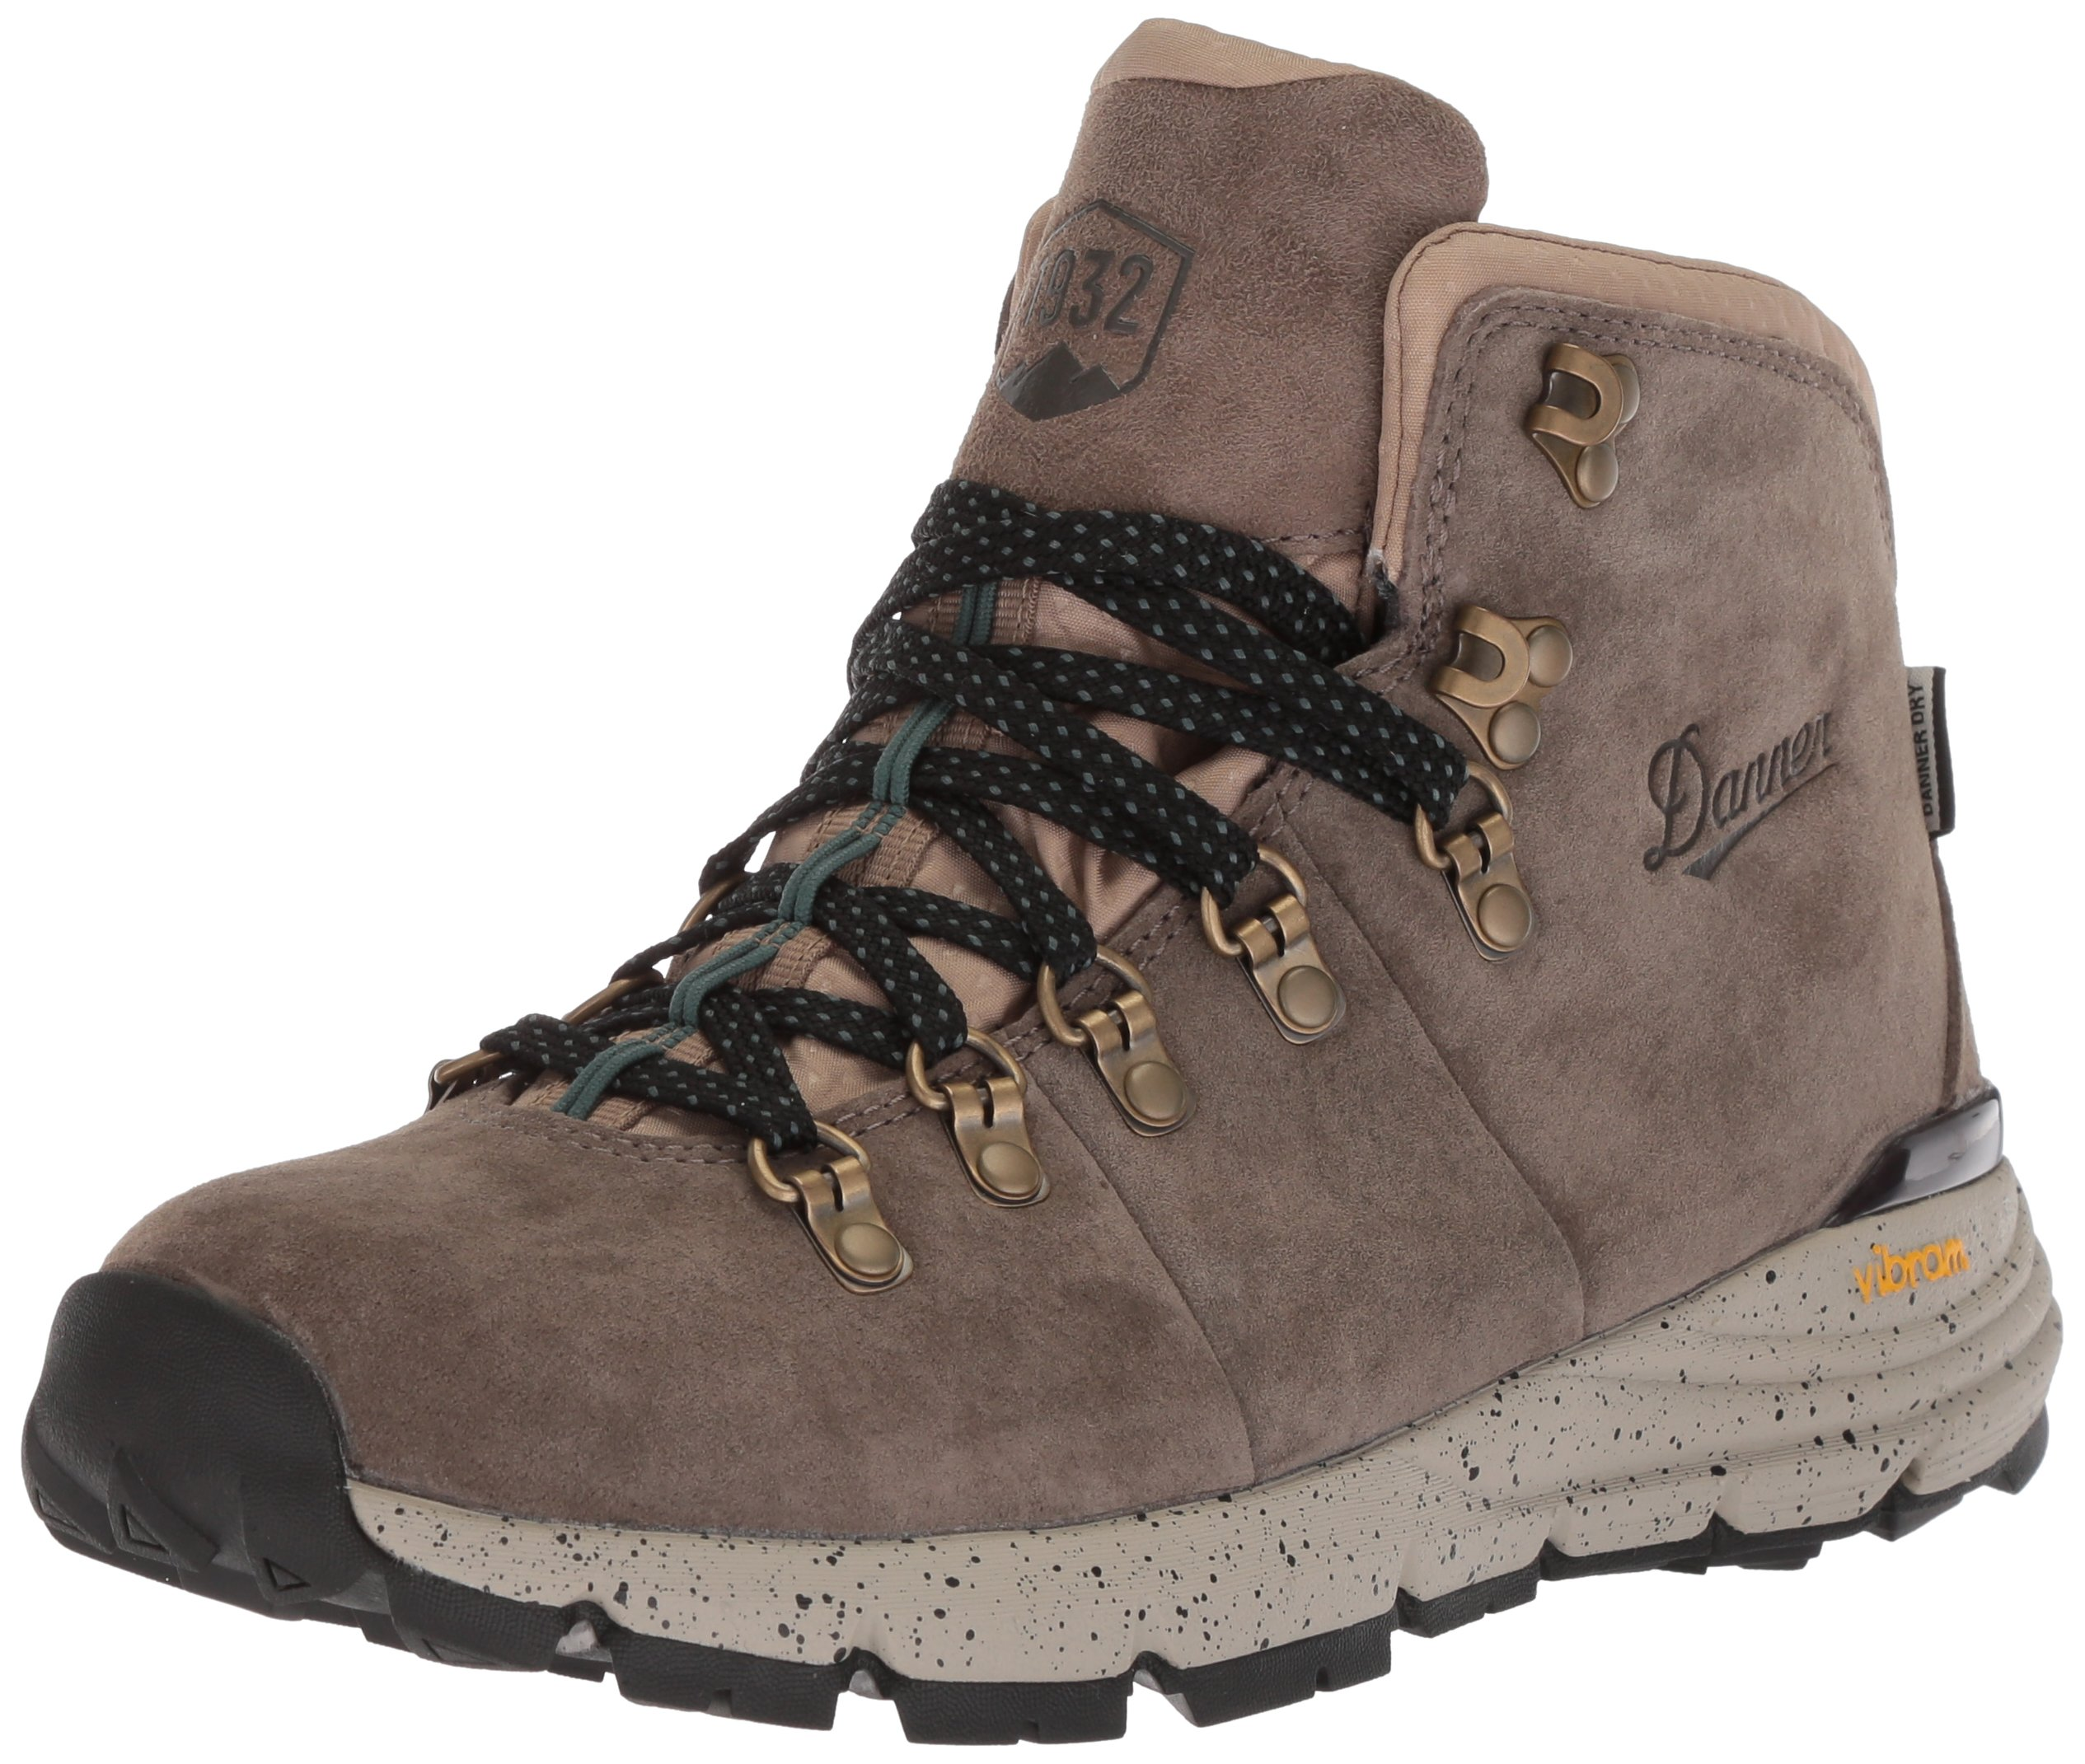 Danner Women's Mountain 600 4.5''-W's Hiking Boot, Hazelwood/Balsam Green, 7 M US by Danner